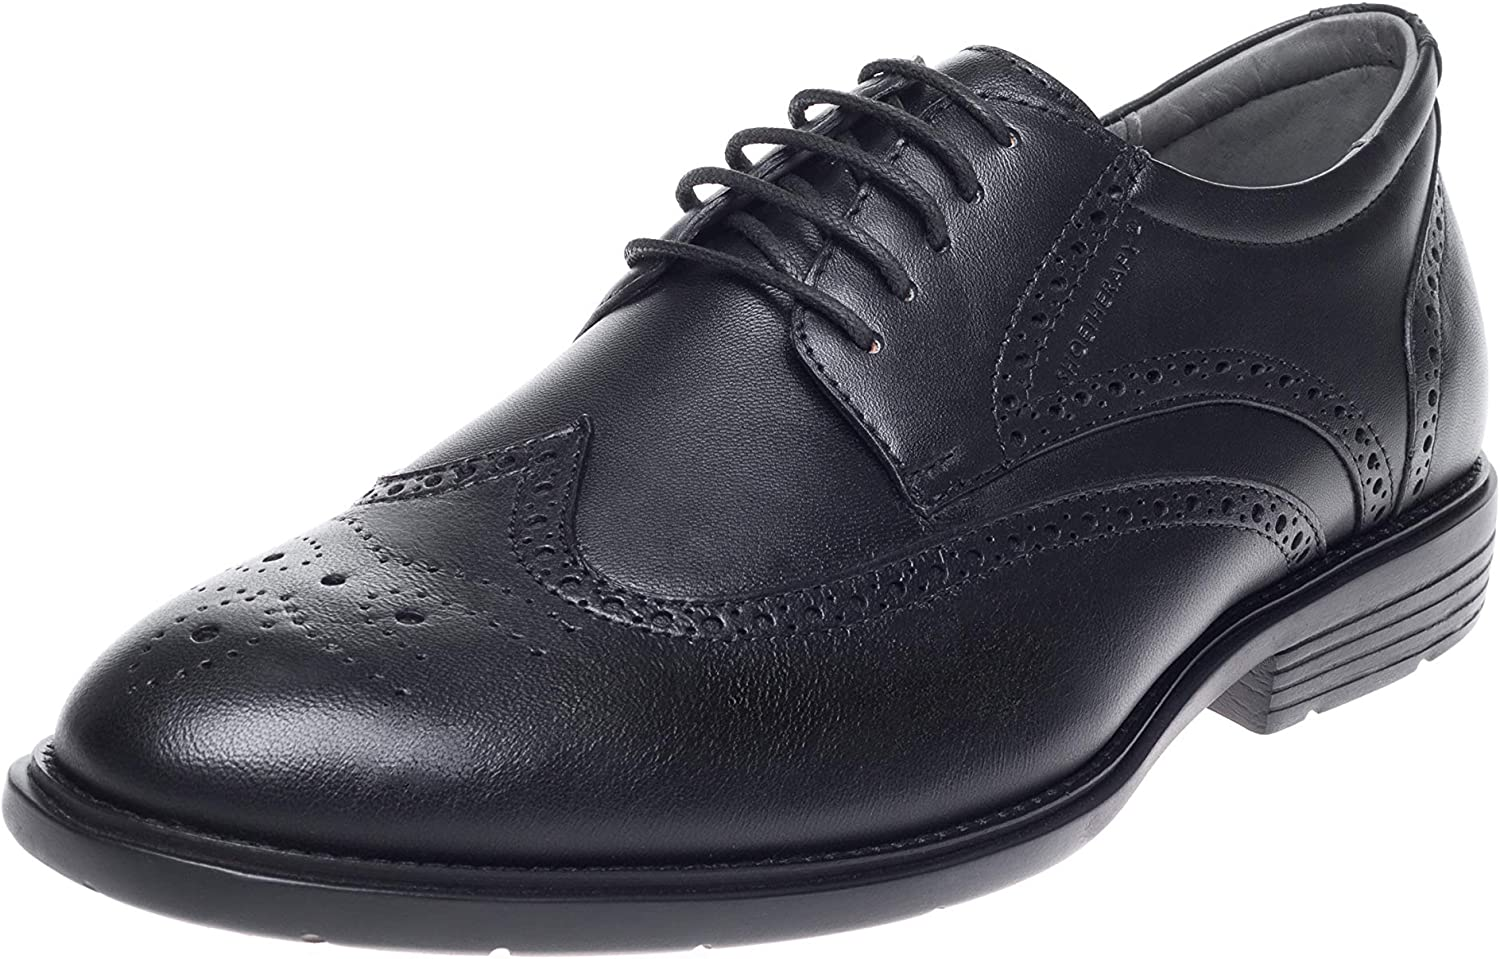 9d13d9bfe7480 shoestherapy 42905 Cerato Cerato Cerato Mens Brogue shoes 91b682 ...